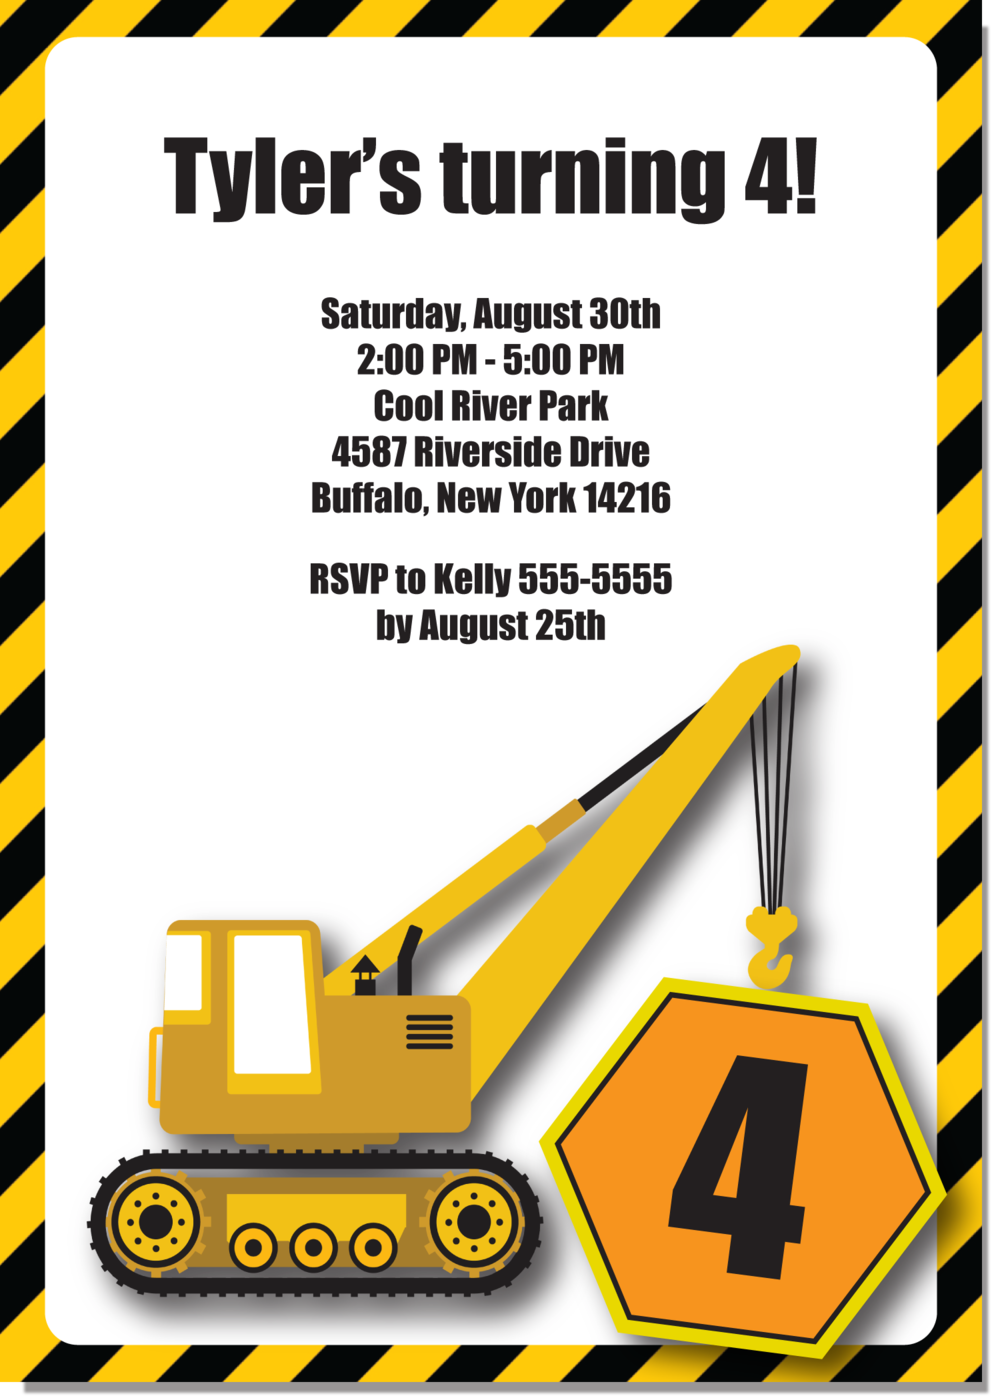 crane construction truck birthday party invitation by - Adamantium.co